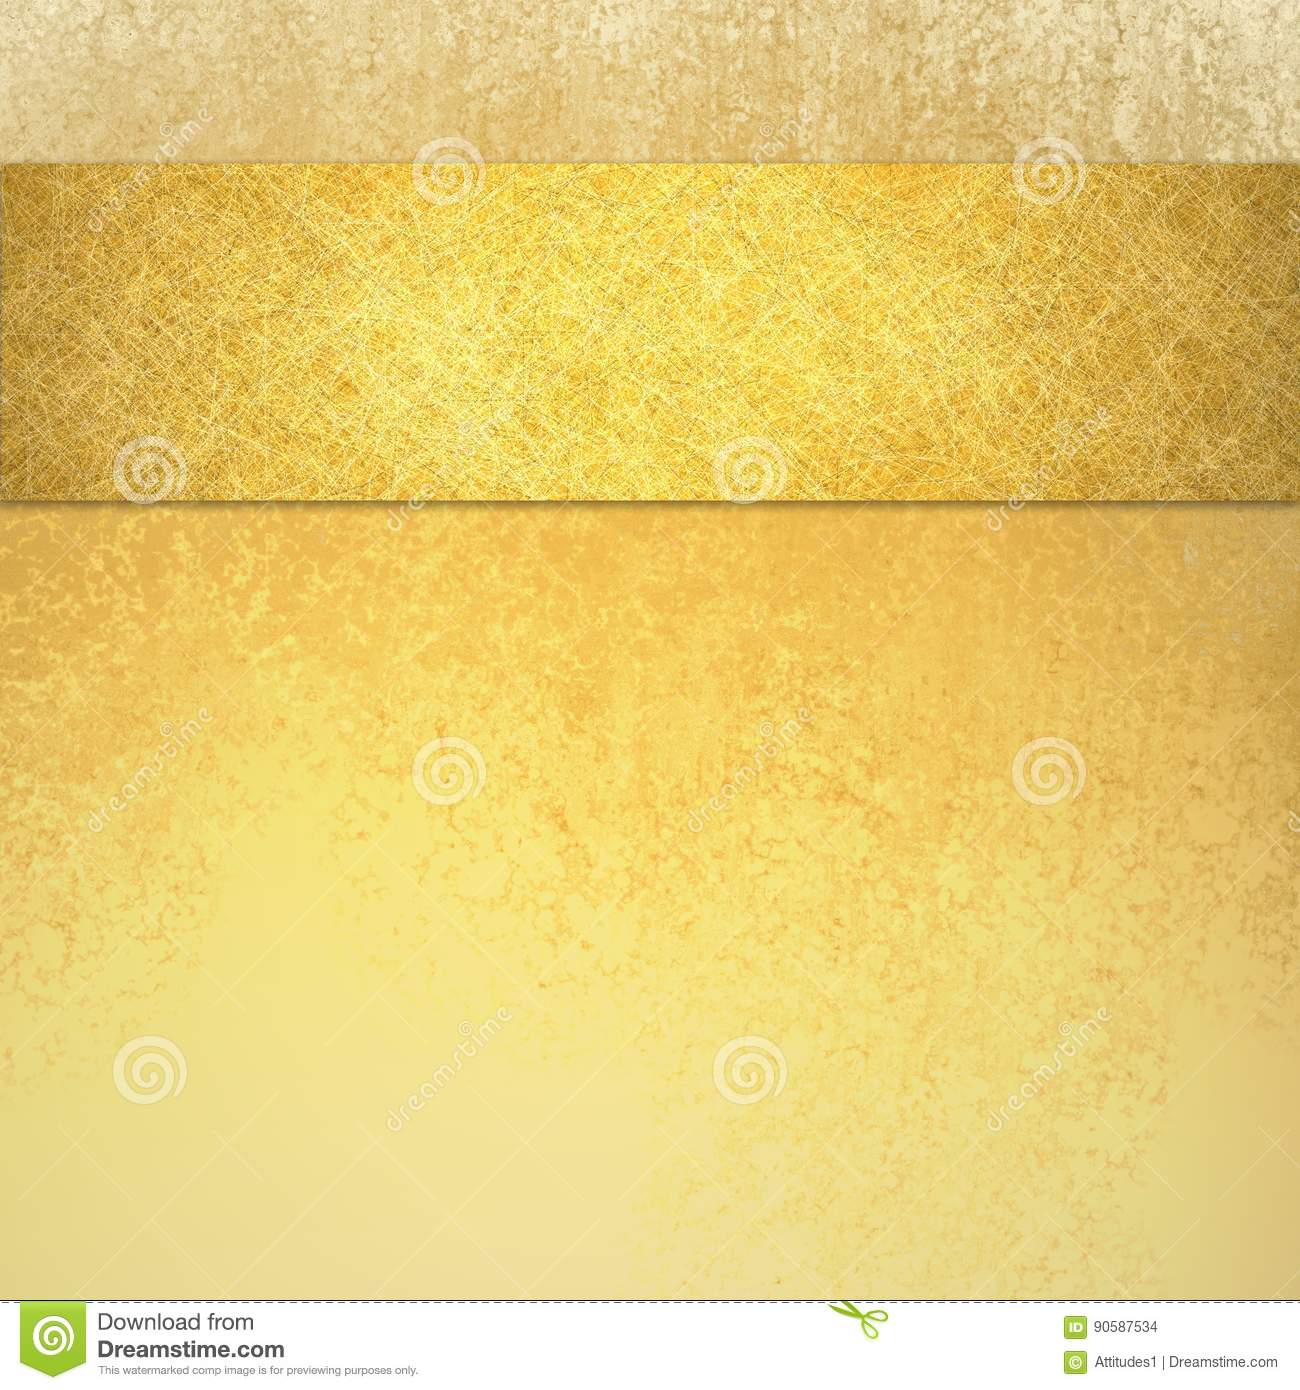 Elegant luxury gold background with ribbon stripe on top border and vintage texture